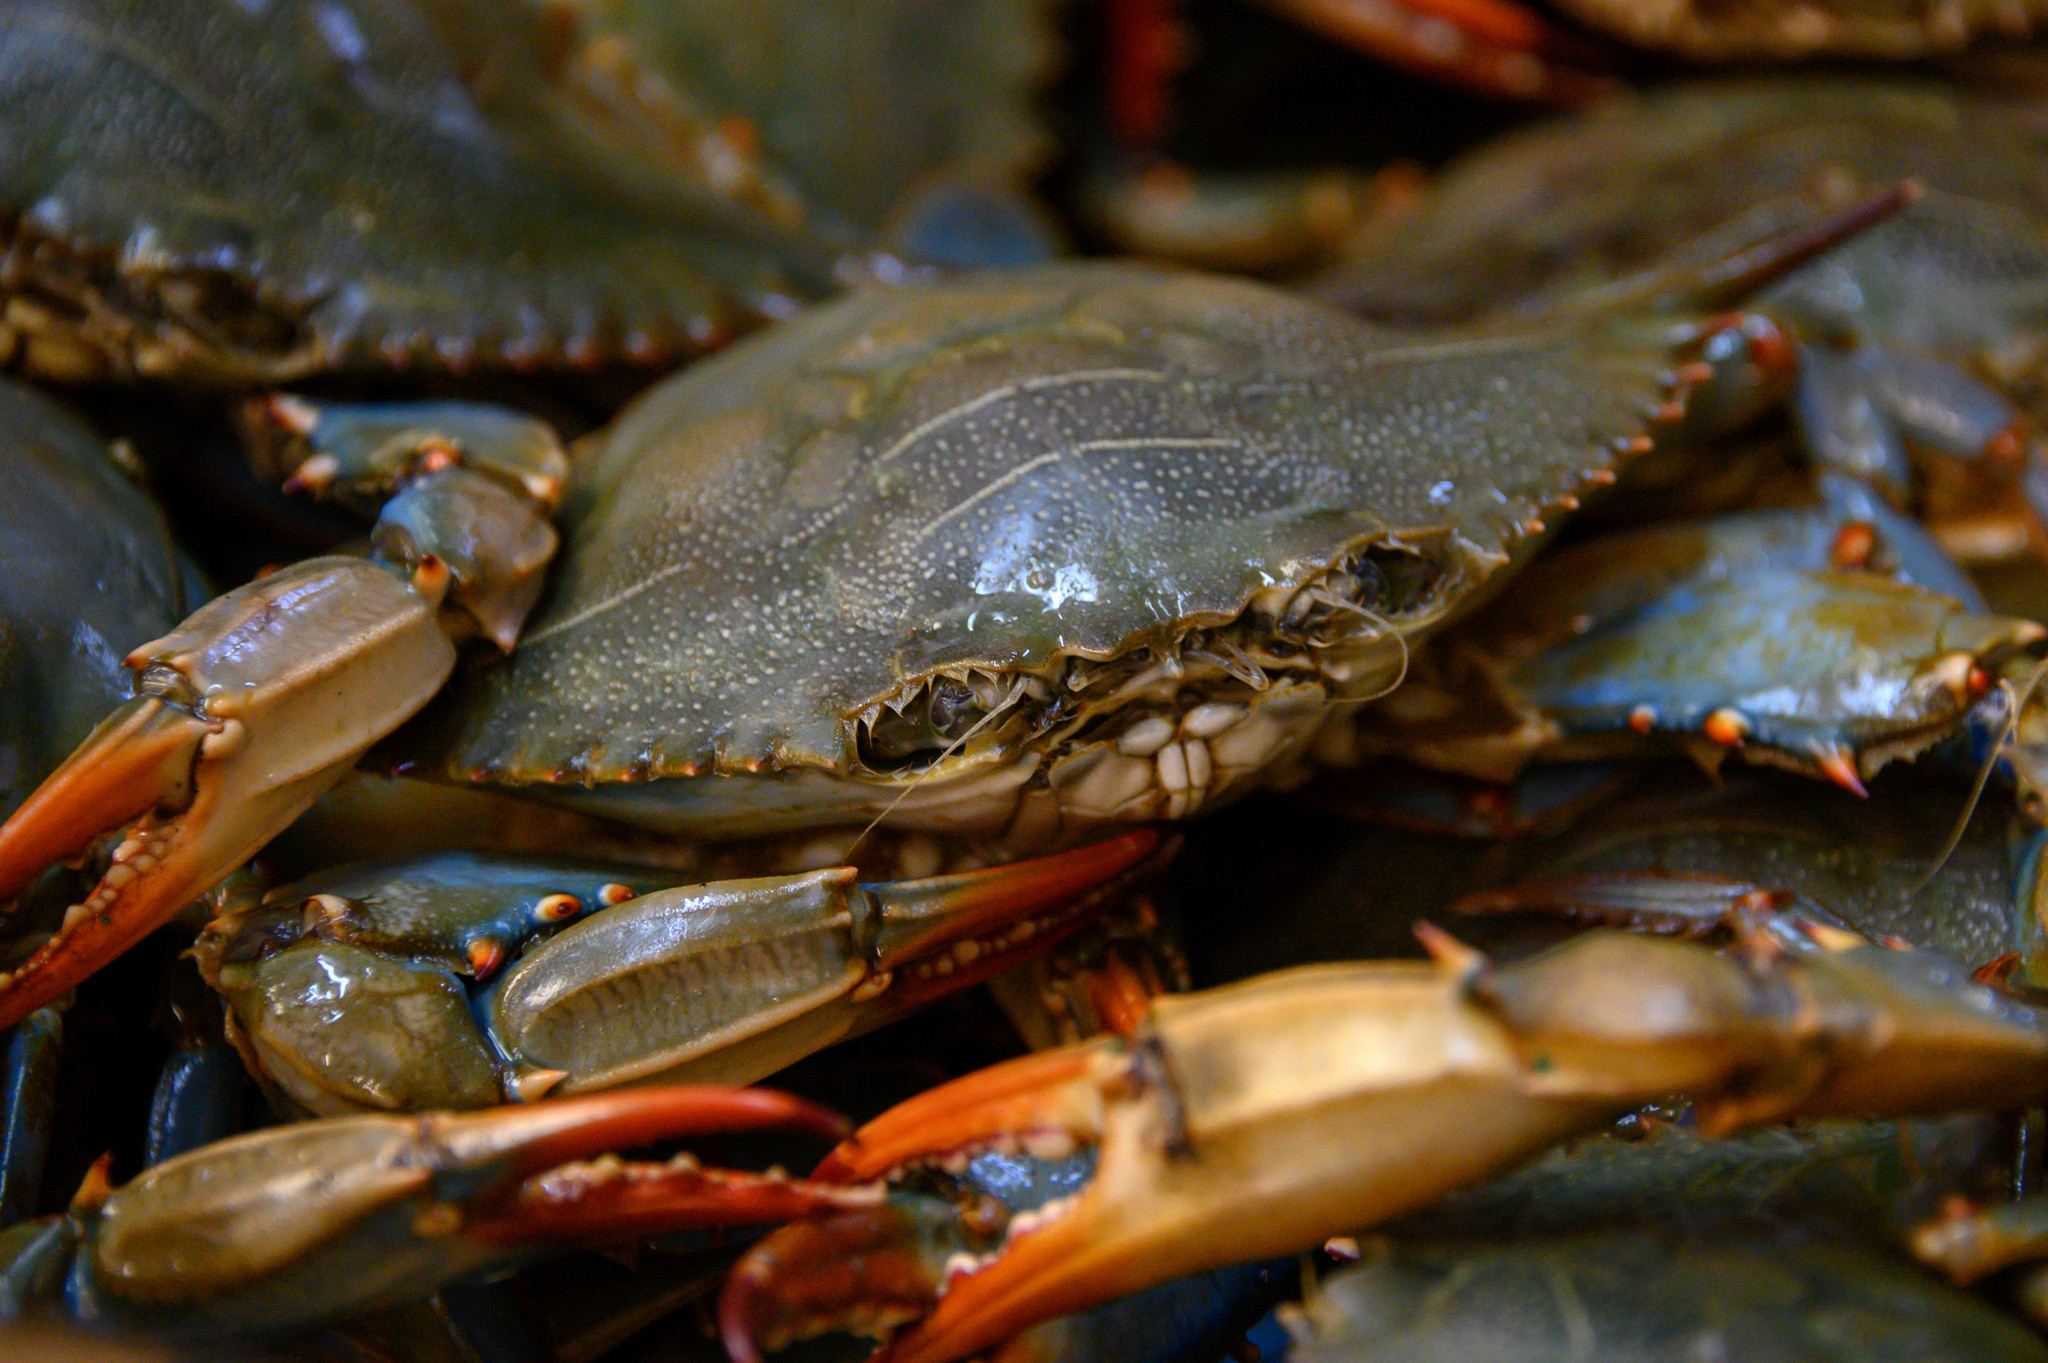 Chesapeake Bay's blue crab population is doing well heading into the Fourth of July, report says